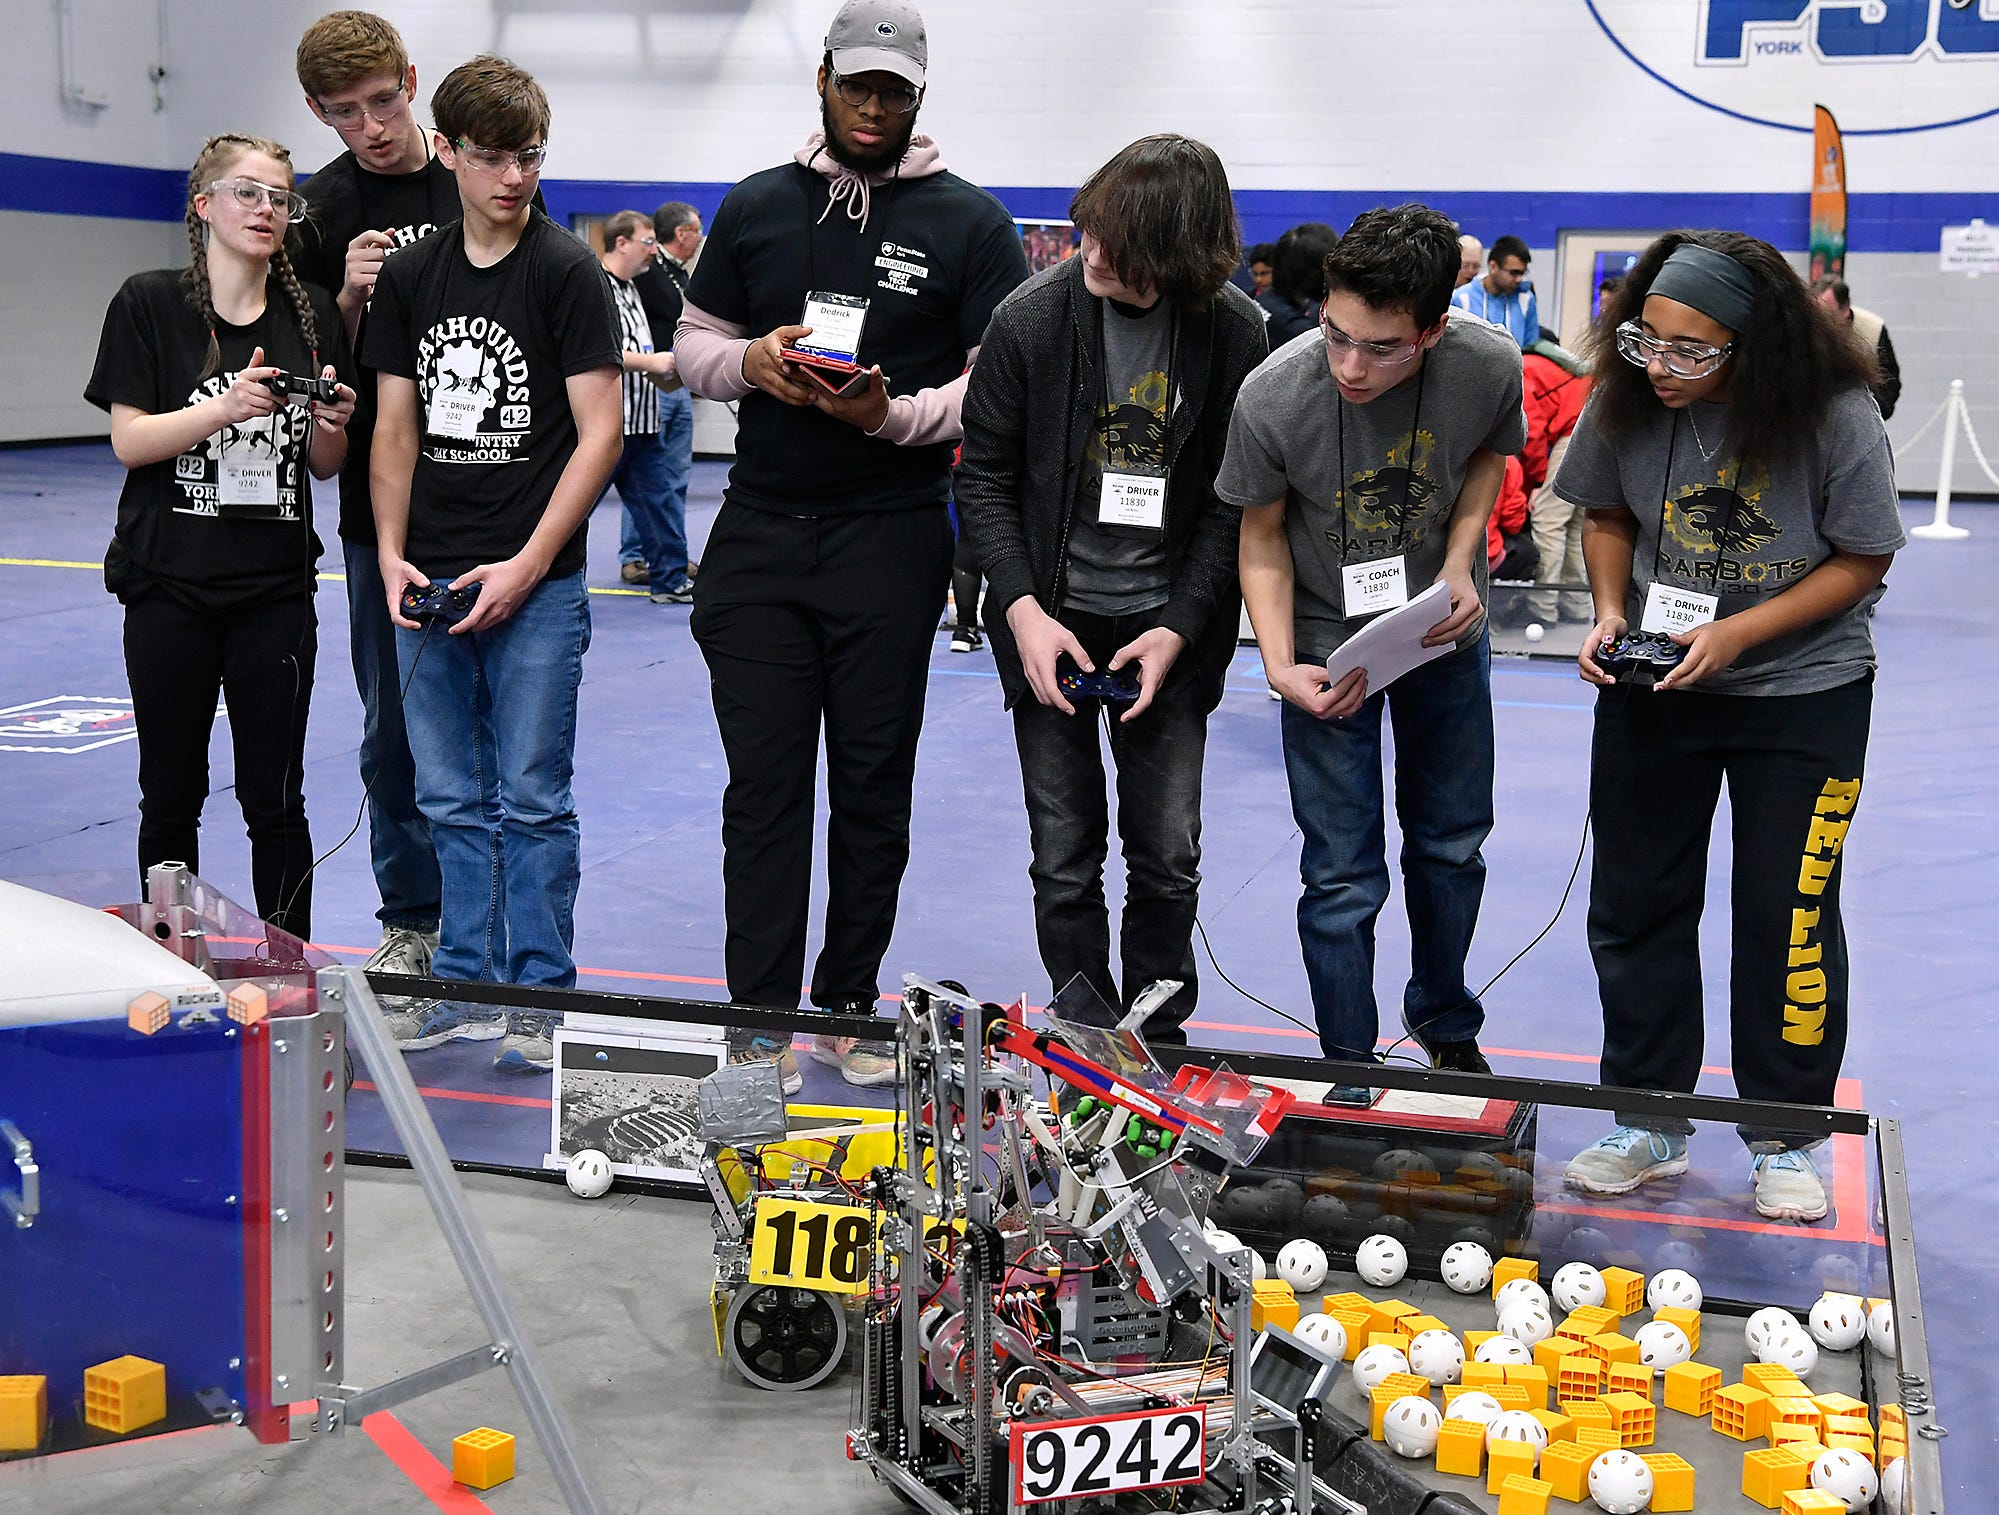 York Country Day School GearHound team Juliet Jacob, lef, Sean Evans and Christian Morino work with Red Lion High rarBots team members Reese Rulevich, Brandon Chen and Zowie Murray, right, during a round of the Rover Ruckus robotics tournament at Penn State York, Sunday, February 3, 2019. John A. Pavoncello photo